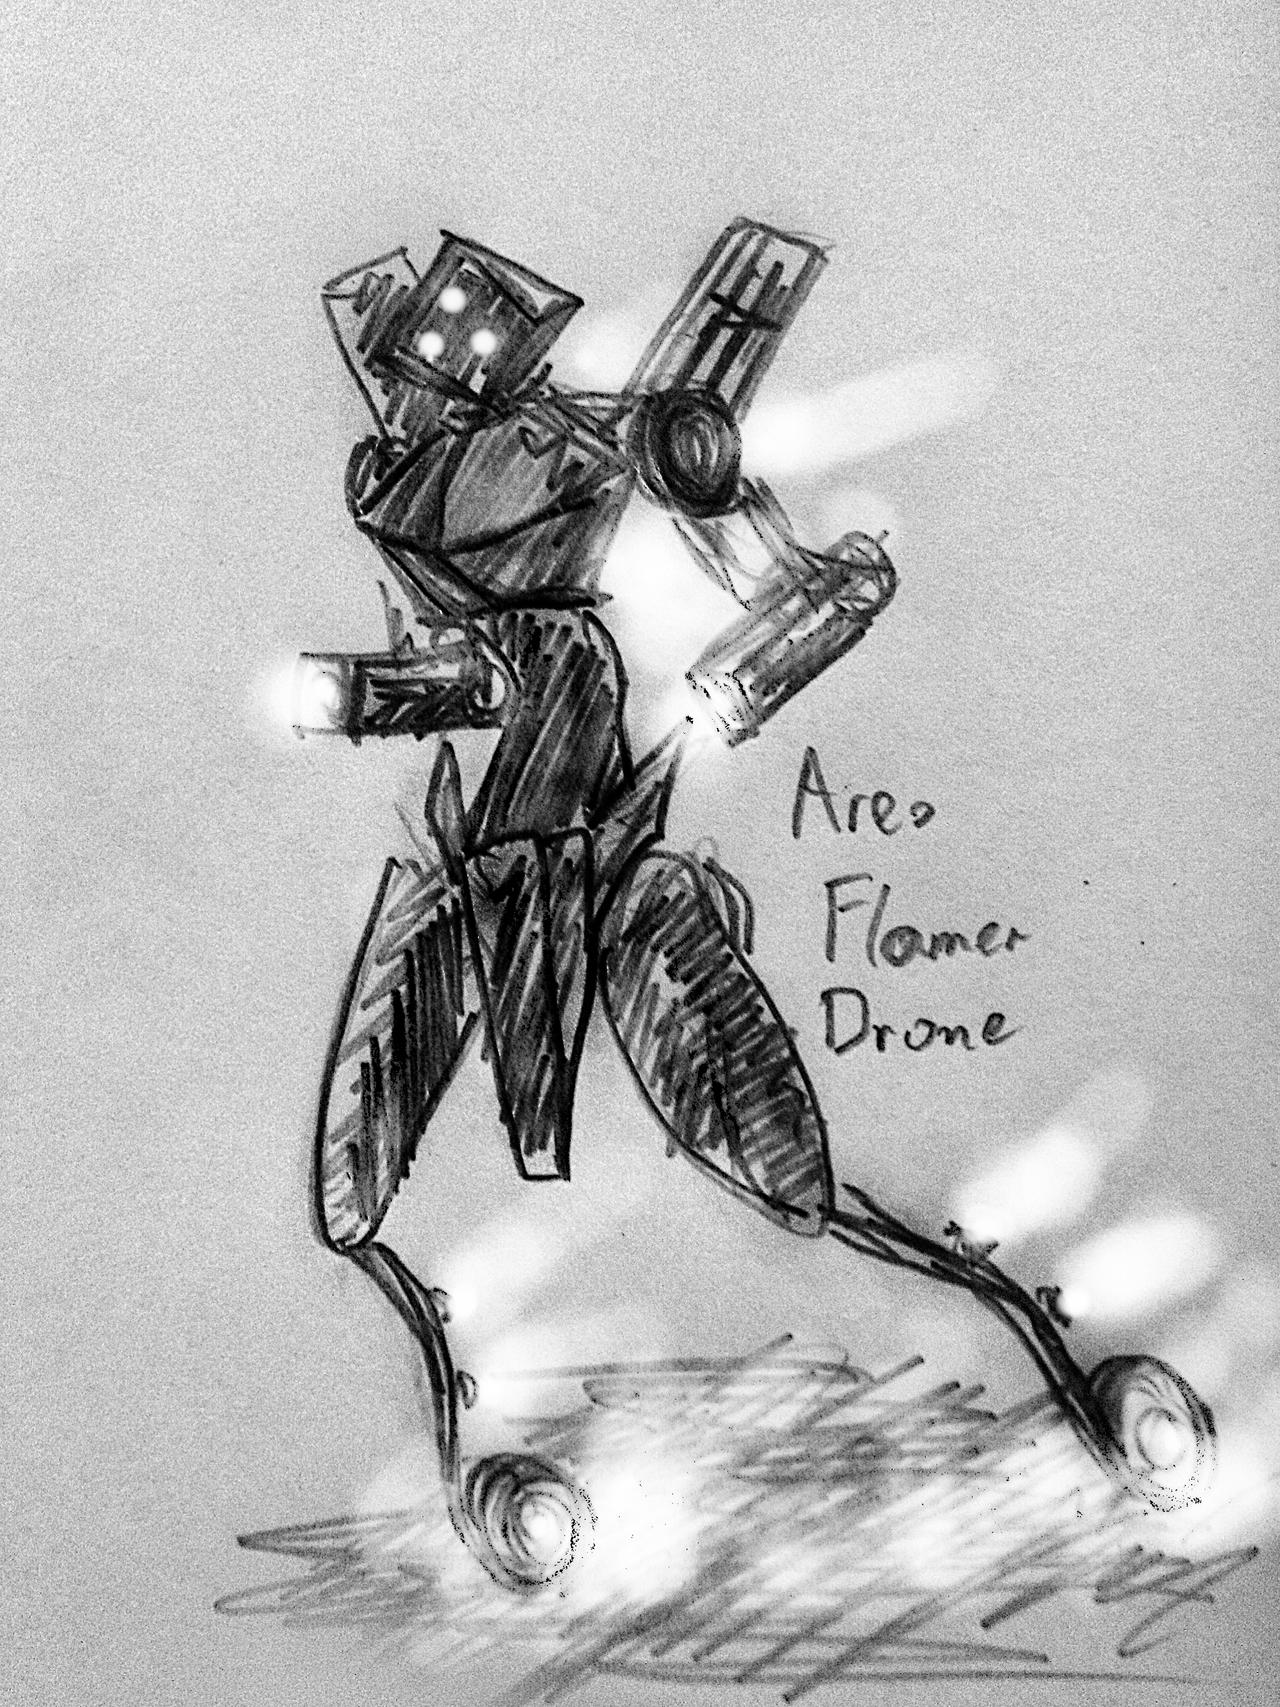 ares_flamer_drone_by_huginthecrowda_ddfy